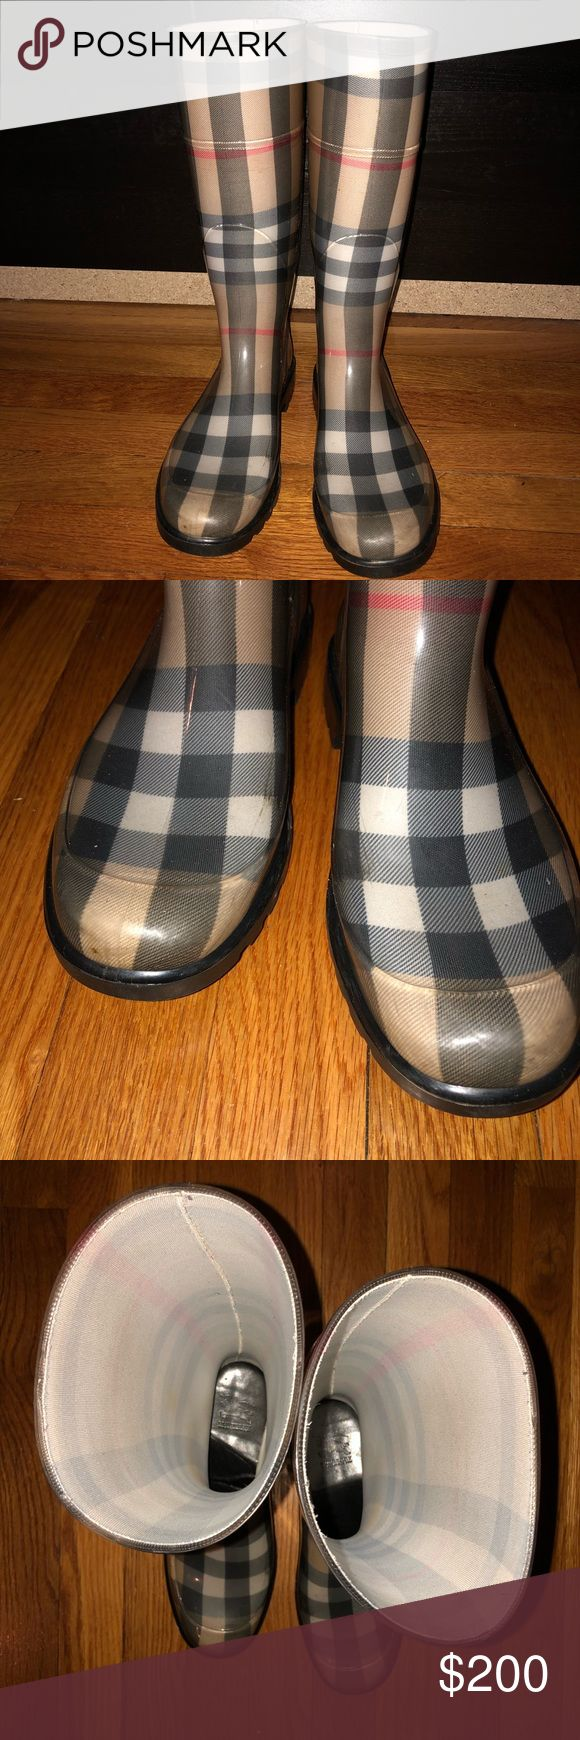 Burberry Classic Rain Boots 38 Size 38. Normal wear and tear. Both inside cardboard soles are slightly bent. Box not included. Burberry Shoes Winter & Rain Boots